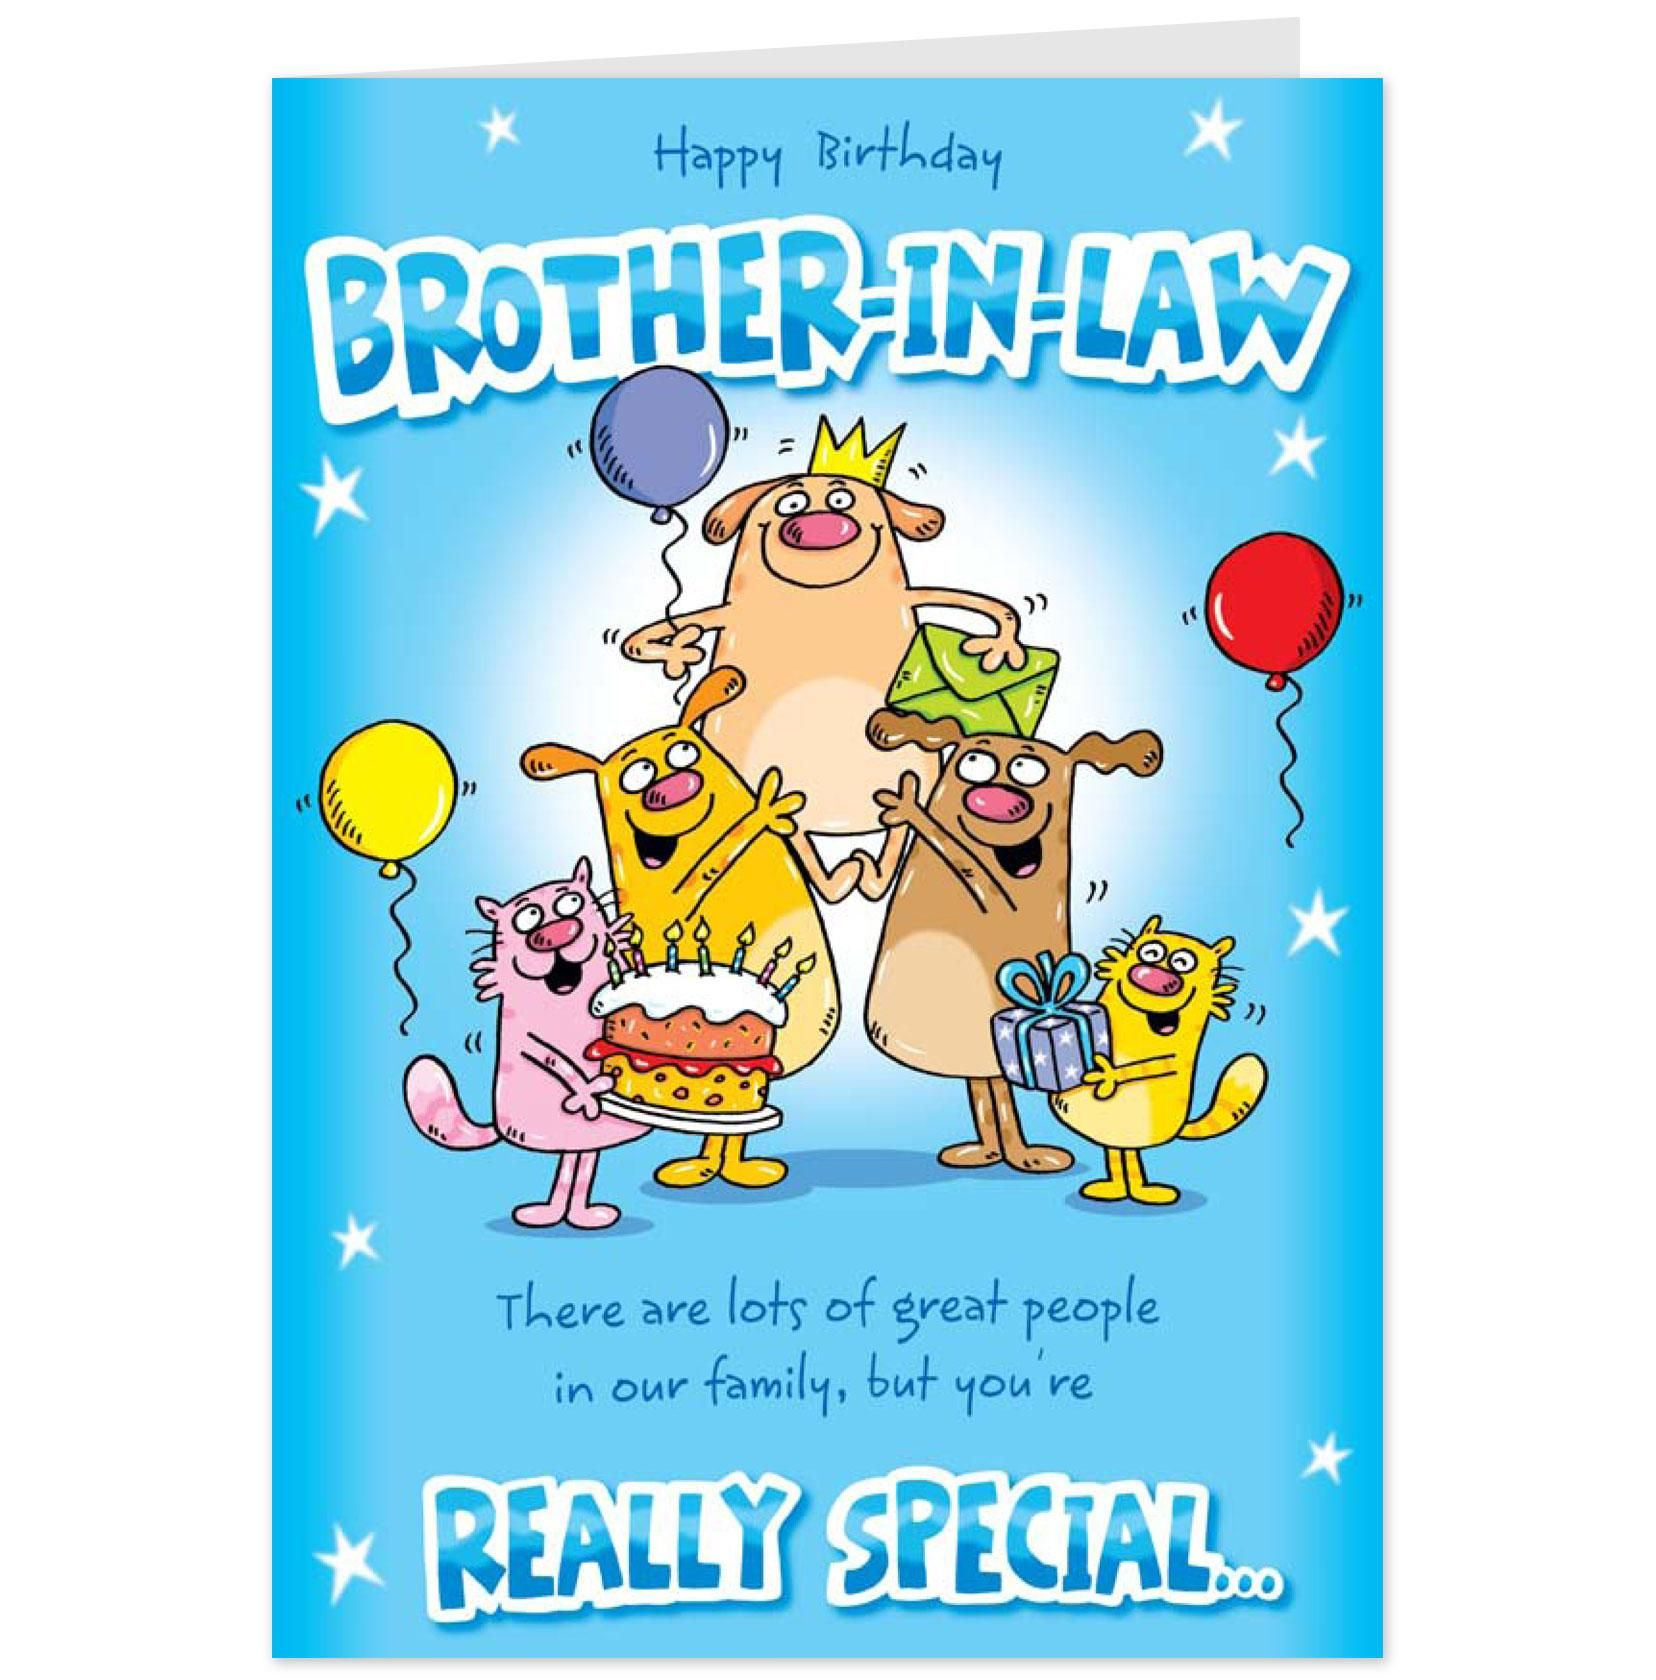 Happy Birthday Brother Funny Messages Really Special Brother In Law Funny Happy Birthday Wishes Happy Birthday Brother Funny Happy Birthday Brother